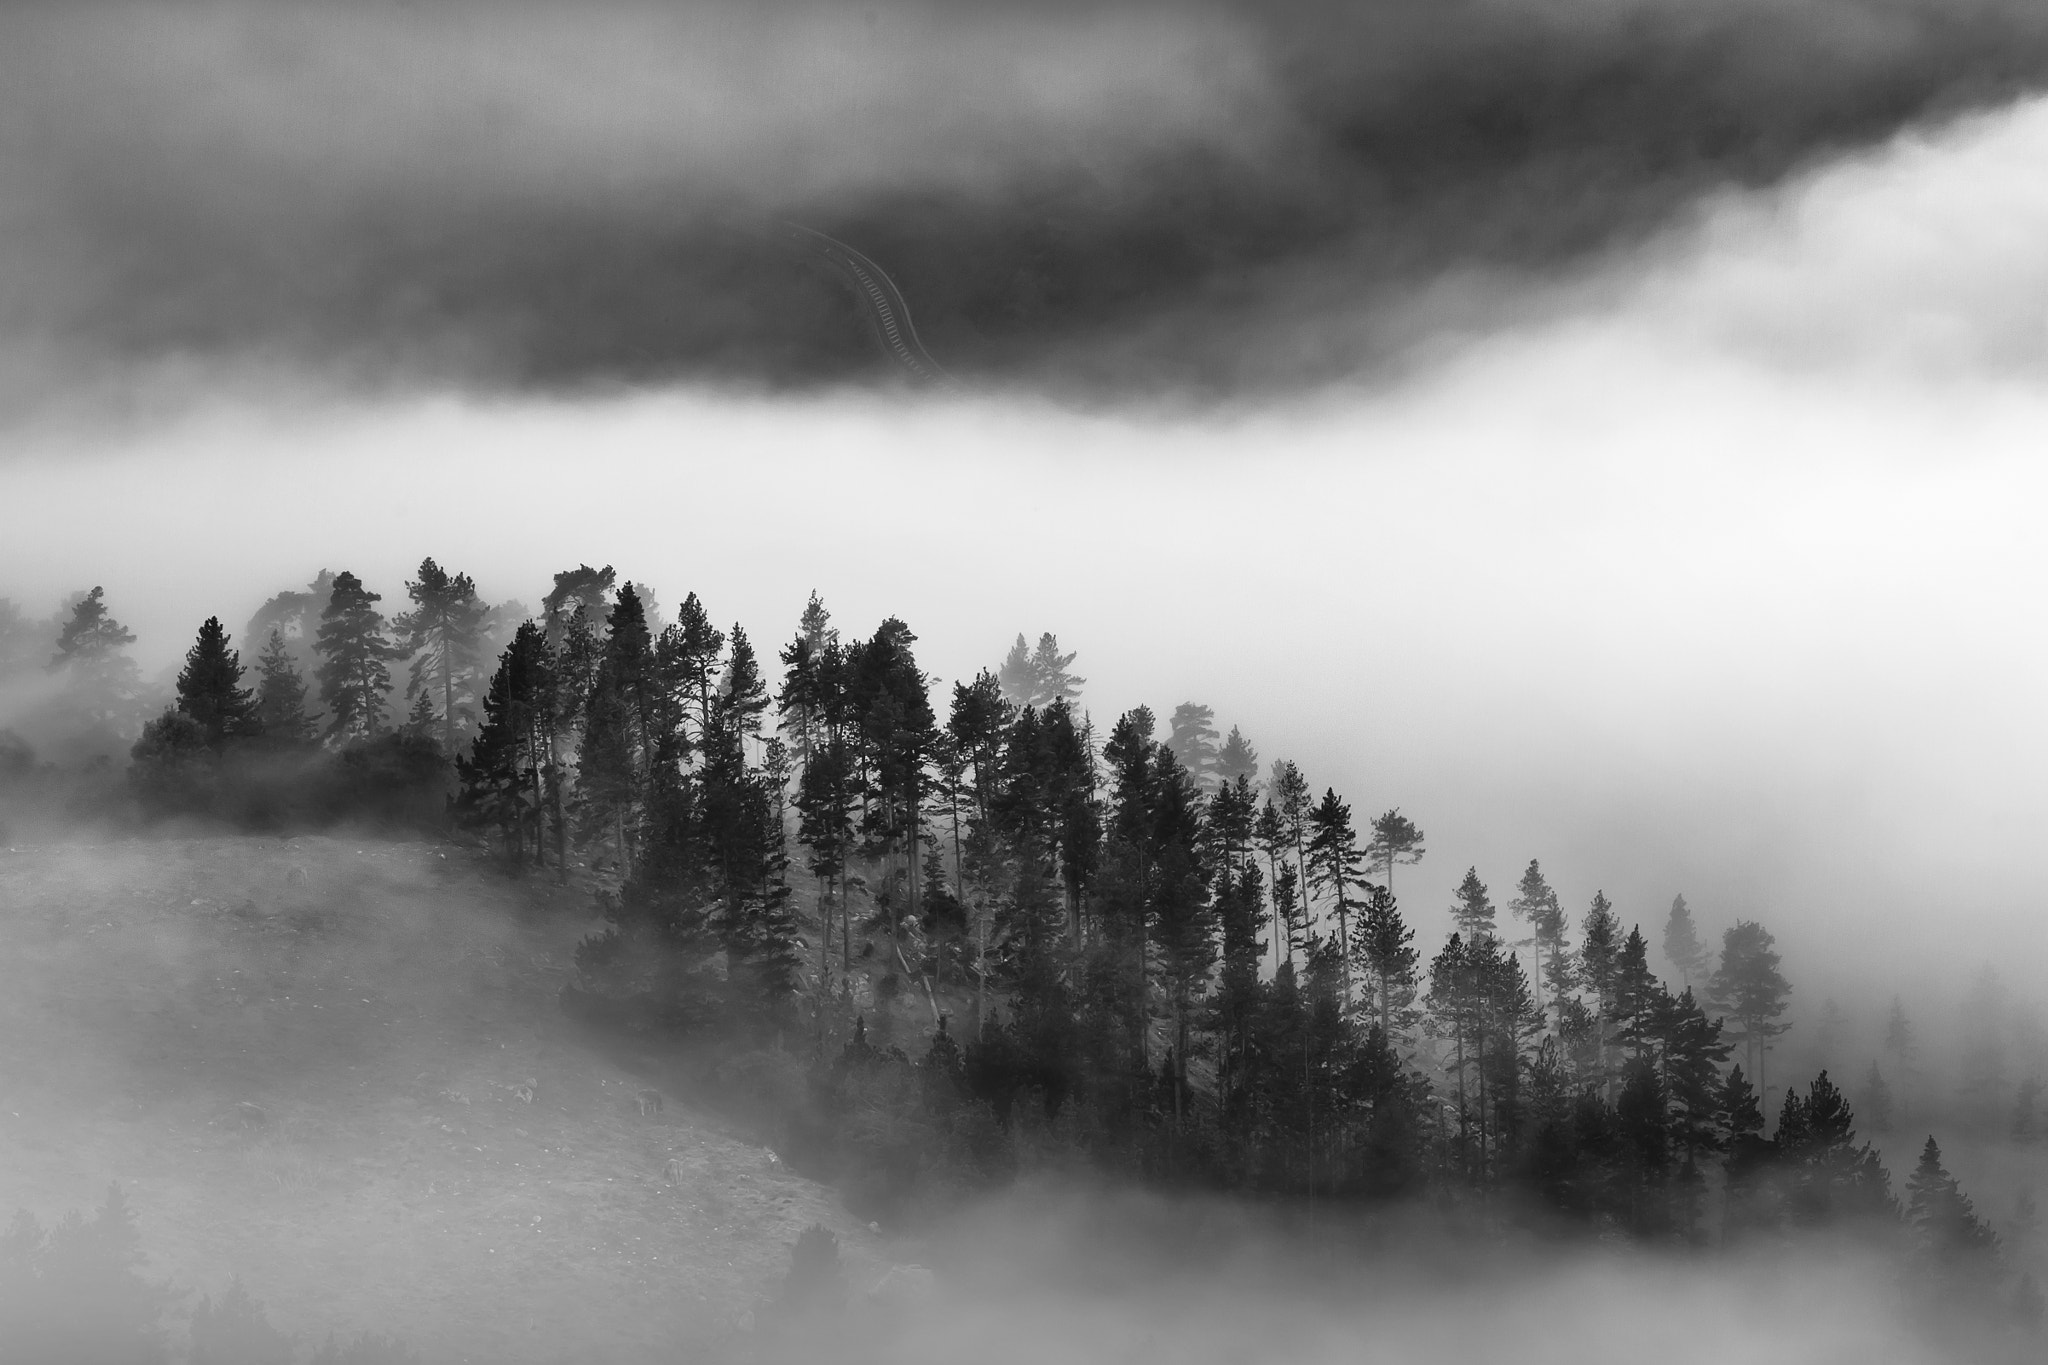 Photograph Fog Island by Ferran Vega on 500px